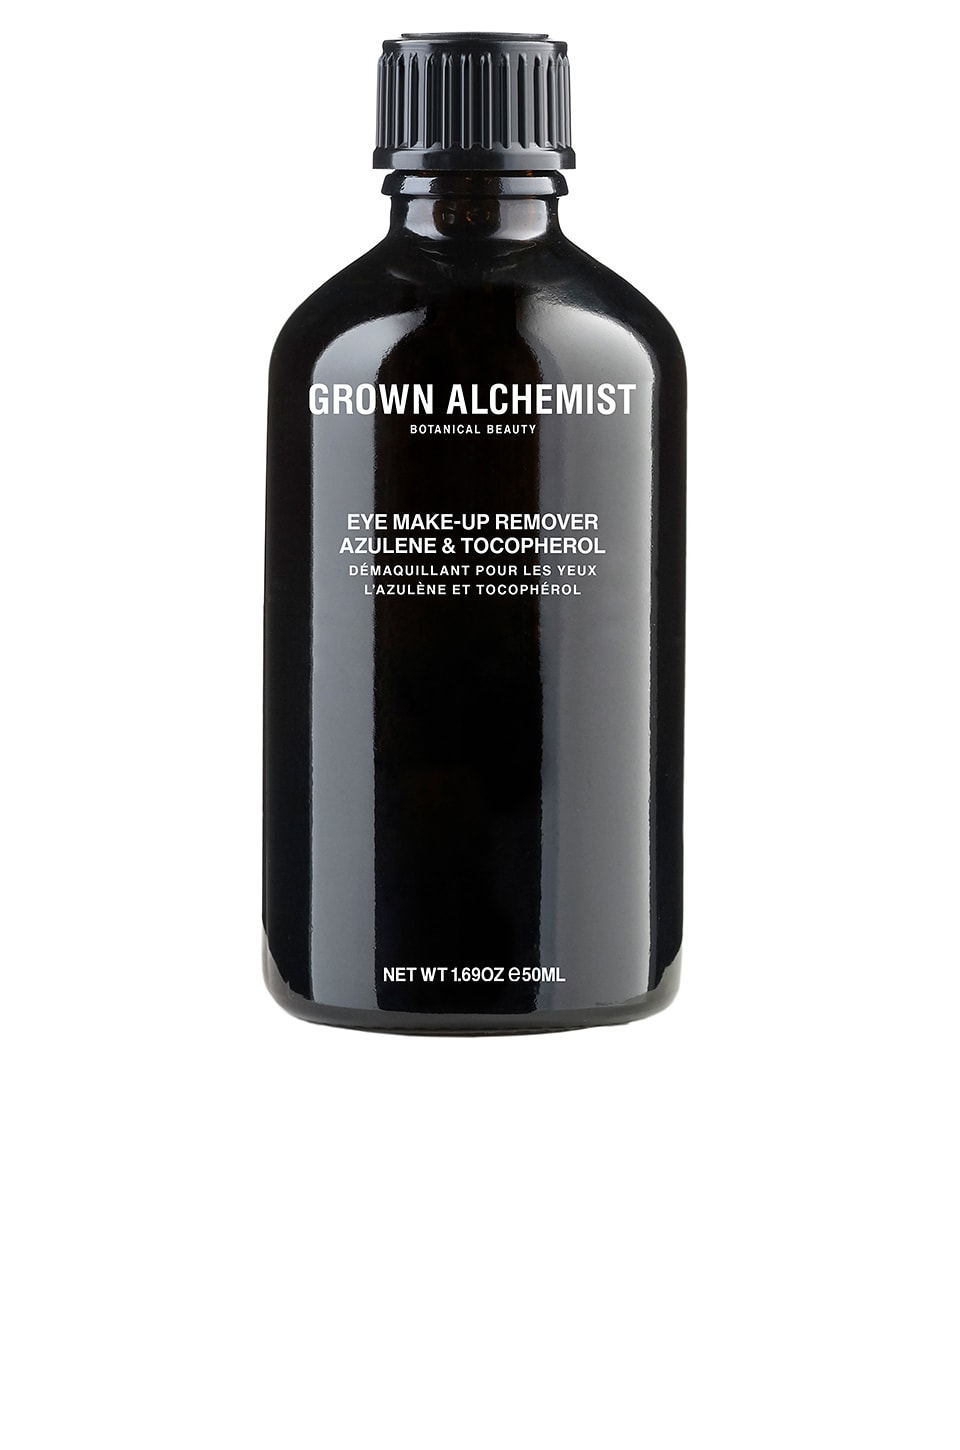 Grown Alchemist Eye Makeup Remover in Azulene & Protec 3